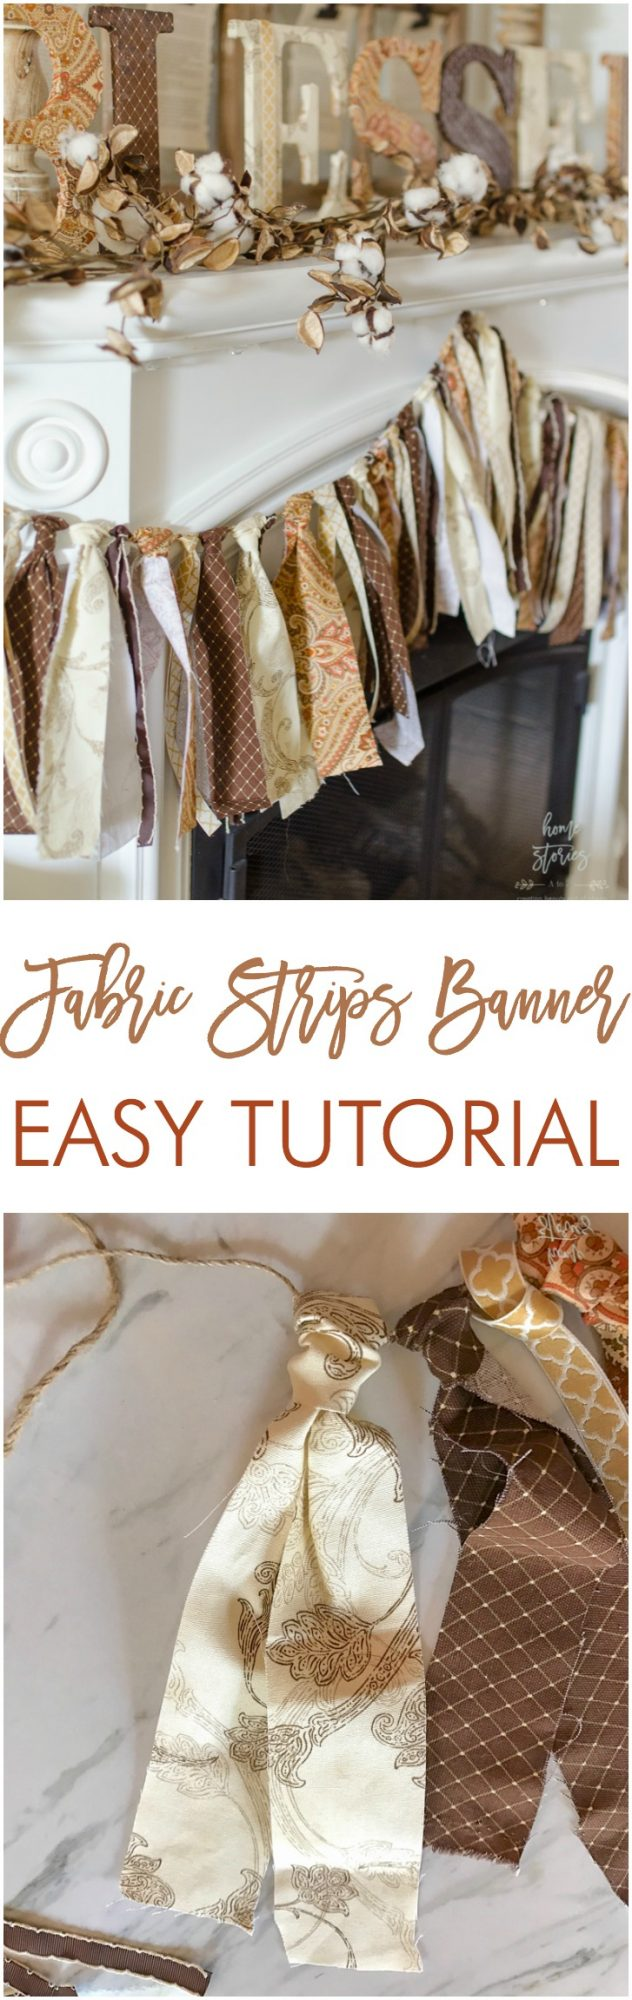 fabric-strips-banner-diy-rag-banner-tutorial